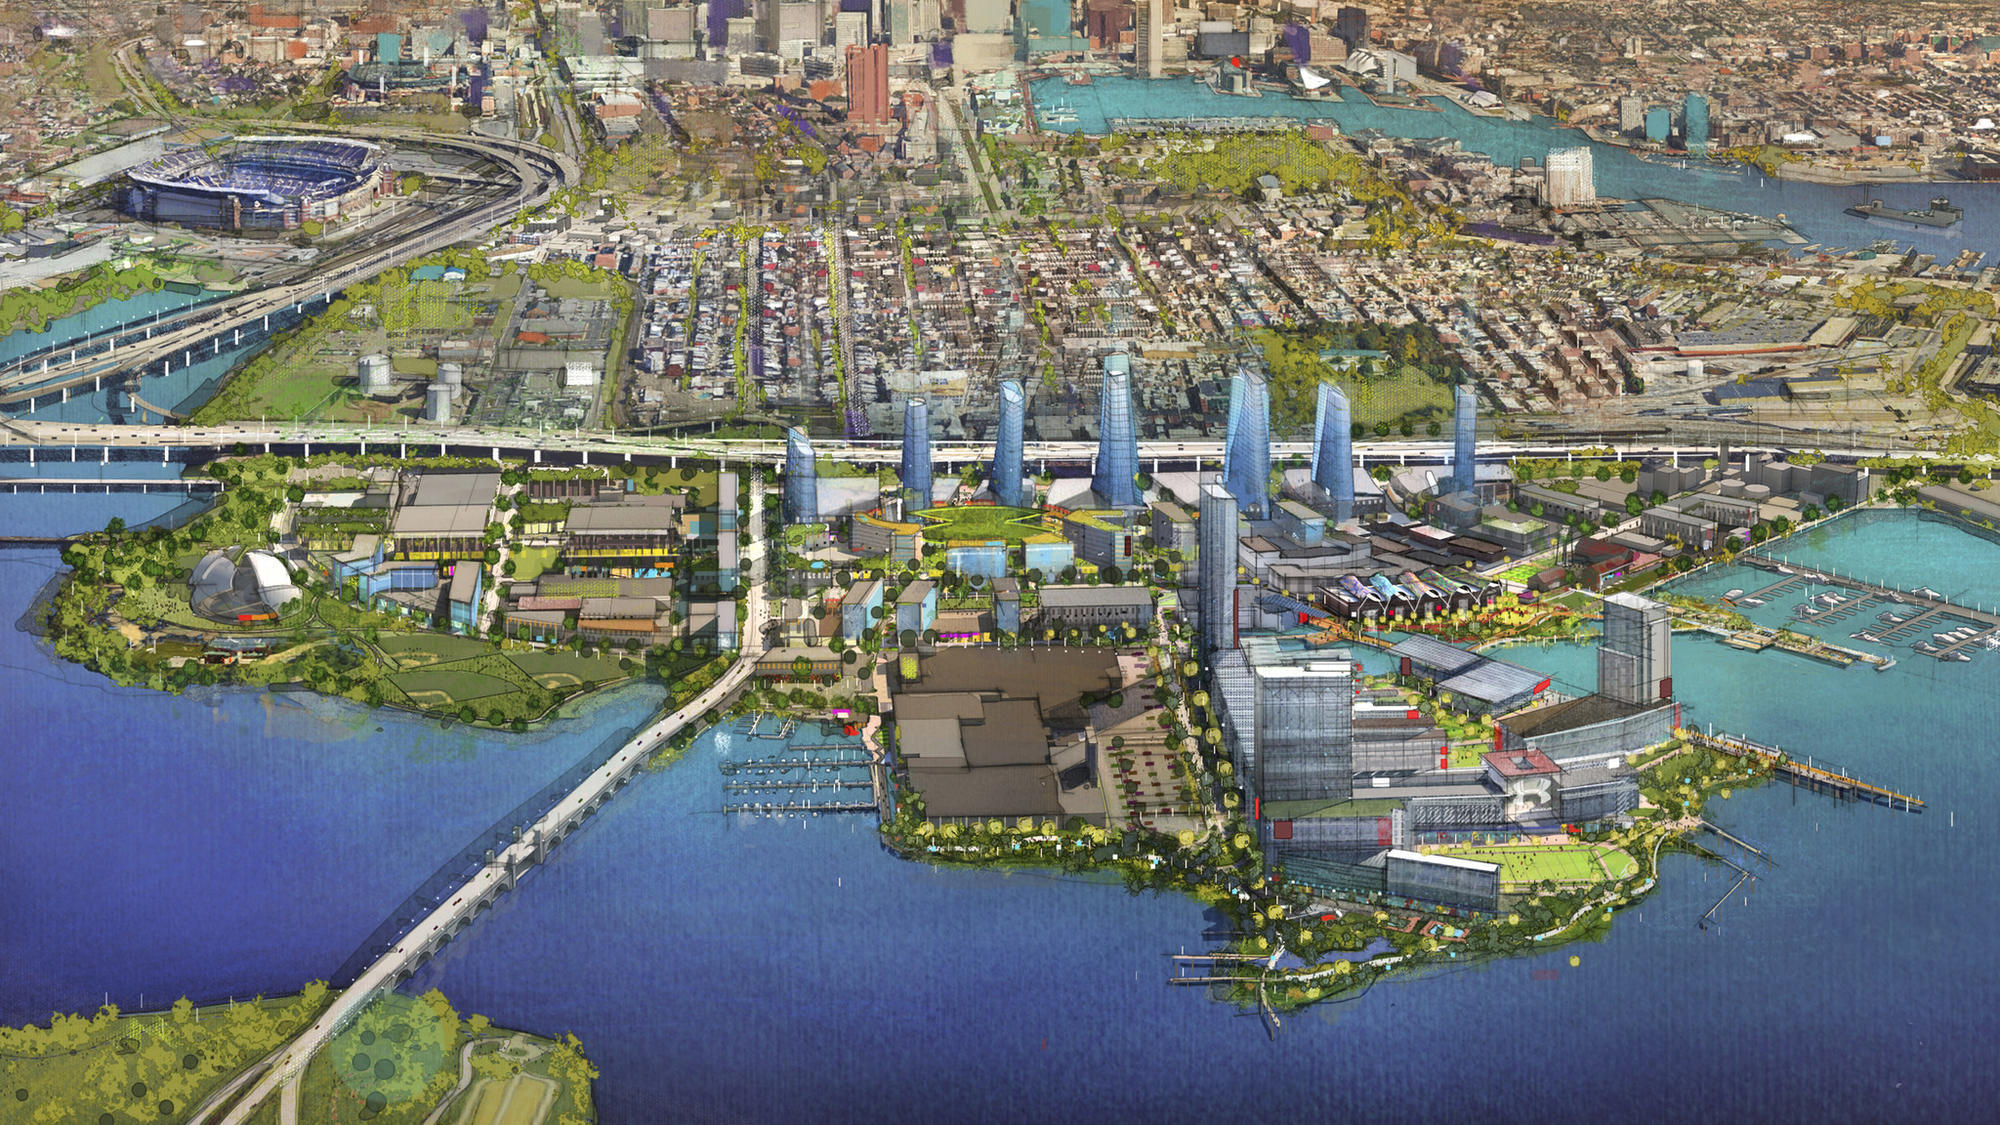 bs-bz-port-covington-development-20180403.jpg